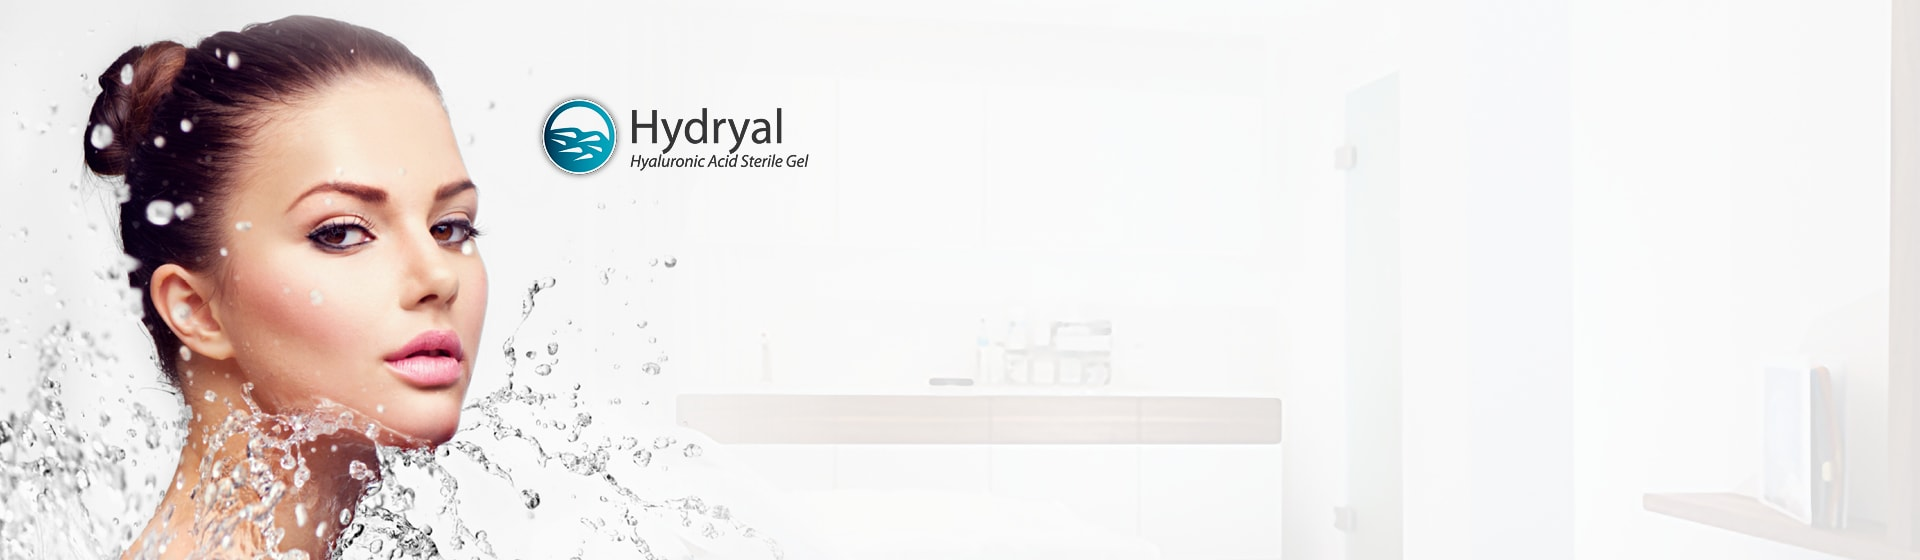 Slideshow-Hydryal